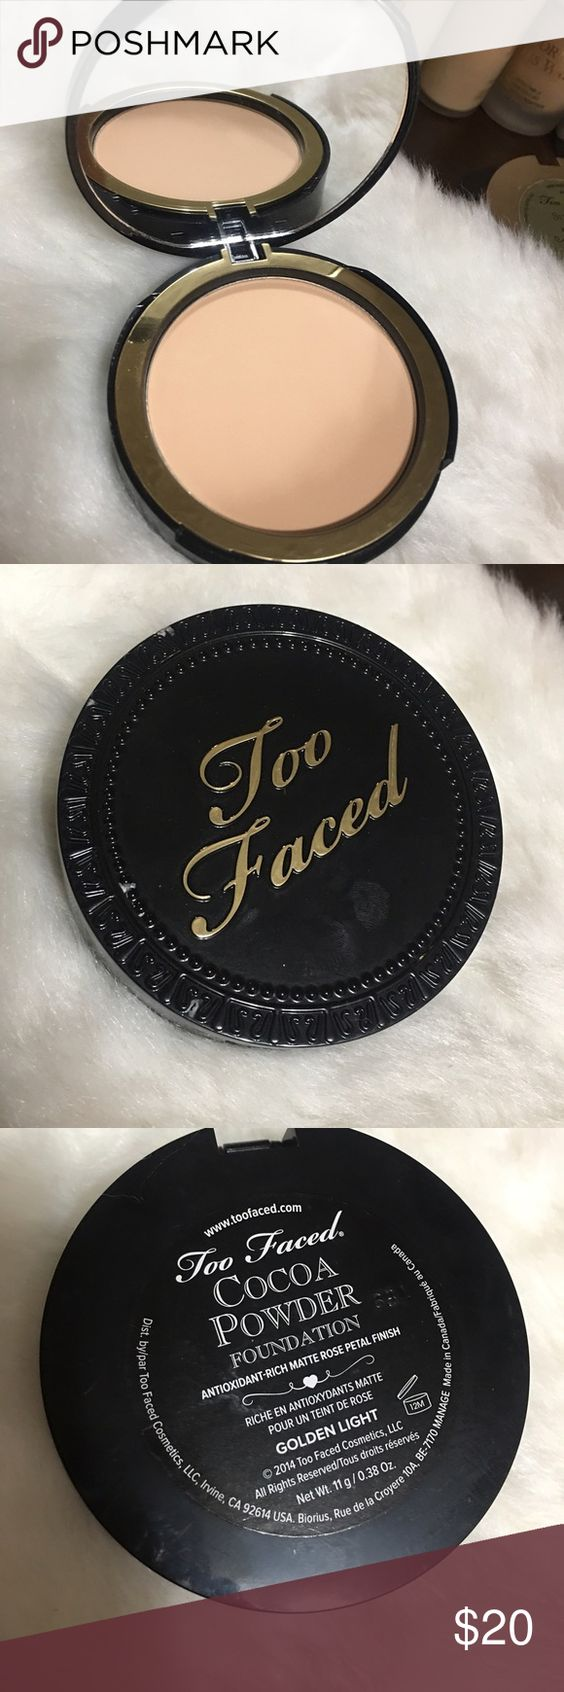 ▪️TOO FACED COCOA POWDER FOUNDATION ▪️ ▪️TOO FACED COCOA POWDER FOUNDATION ▪️shade: golden light ▪️never been used ▪️no box ▪️ Too Faced Makeup Foundation